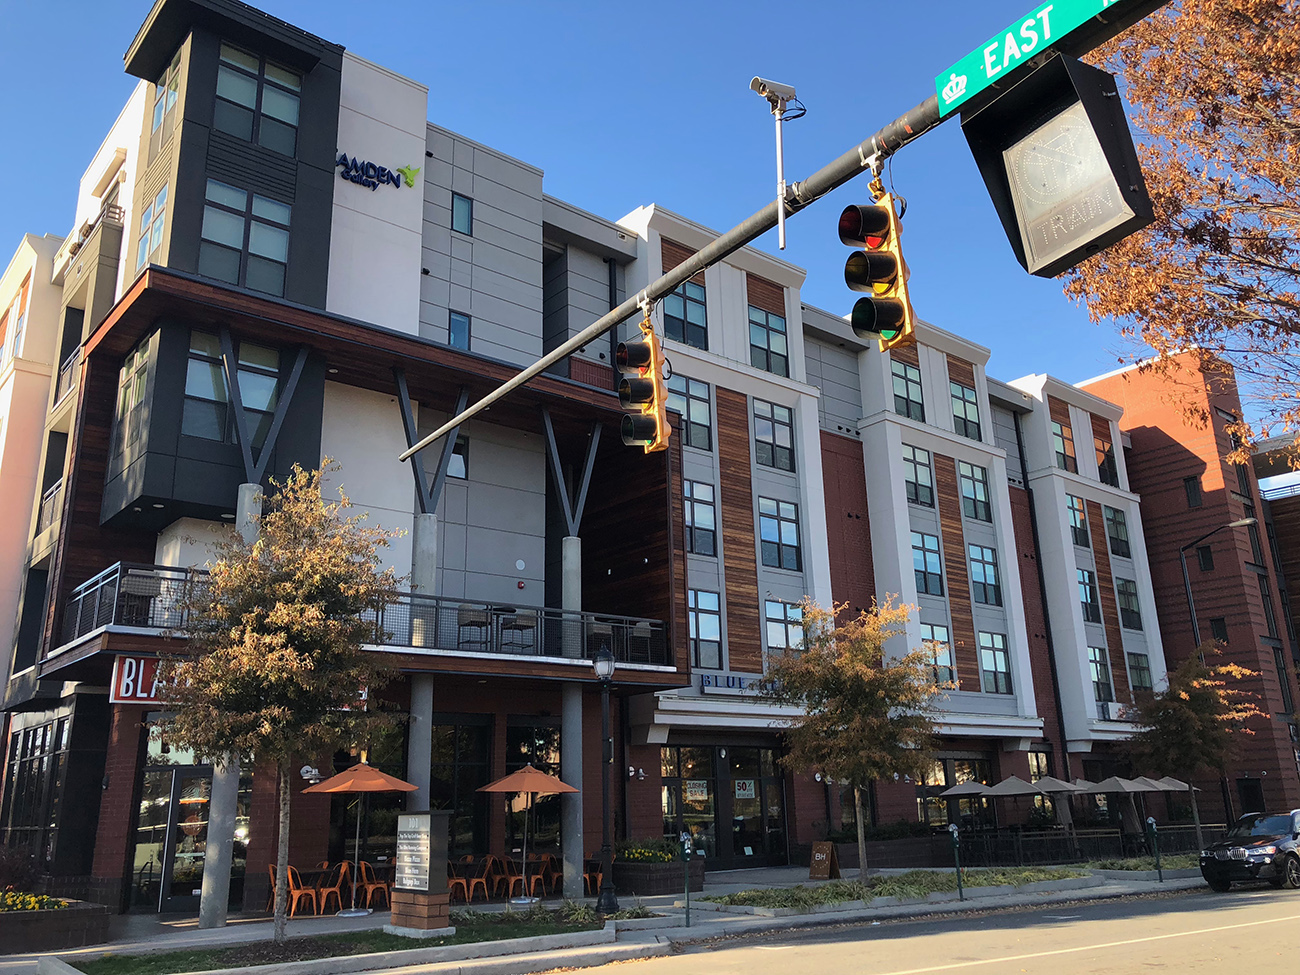 South End apartment hunting? Best studio apartments starting at $1,295 available right now